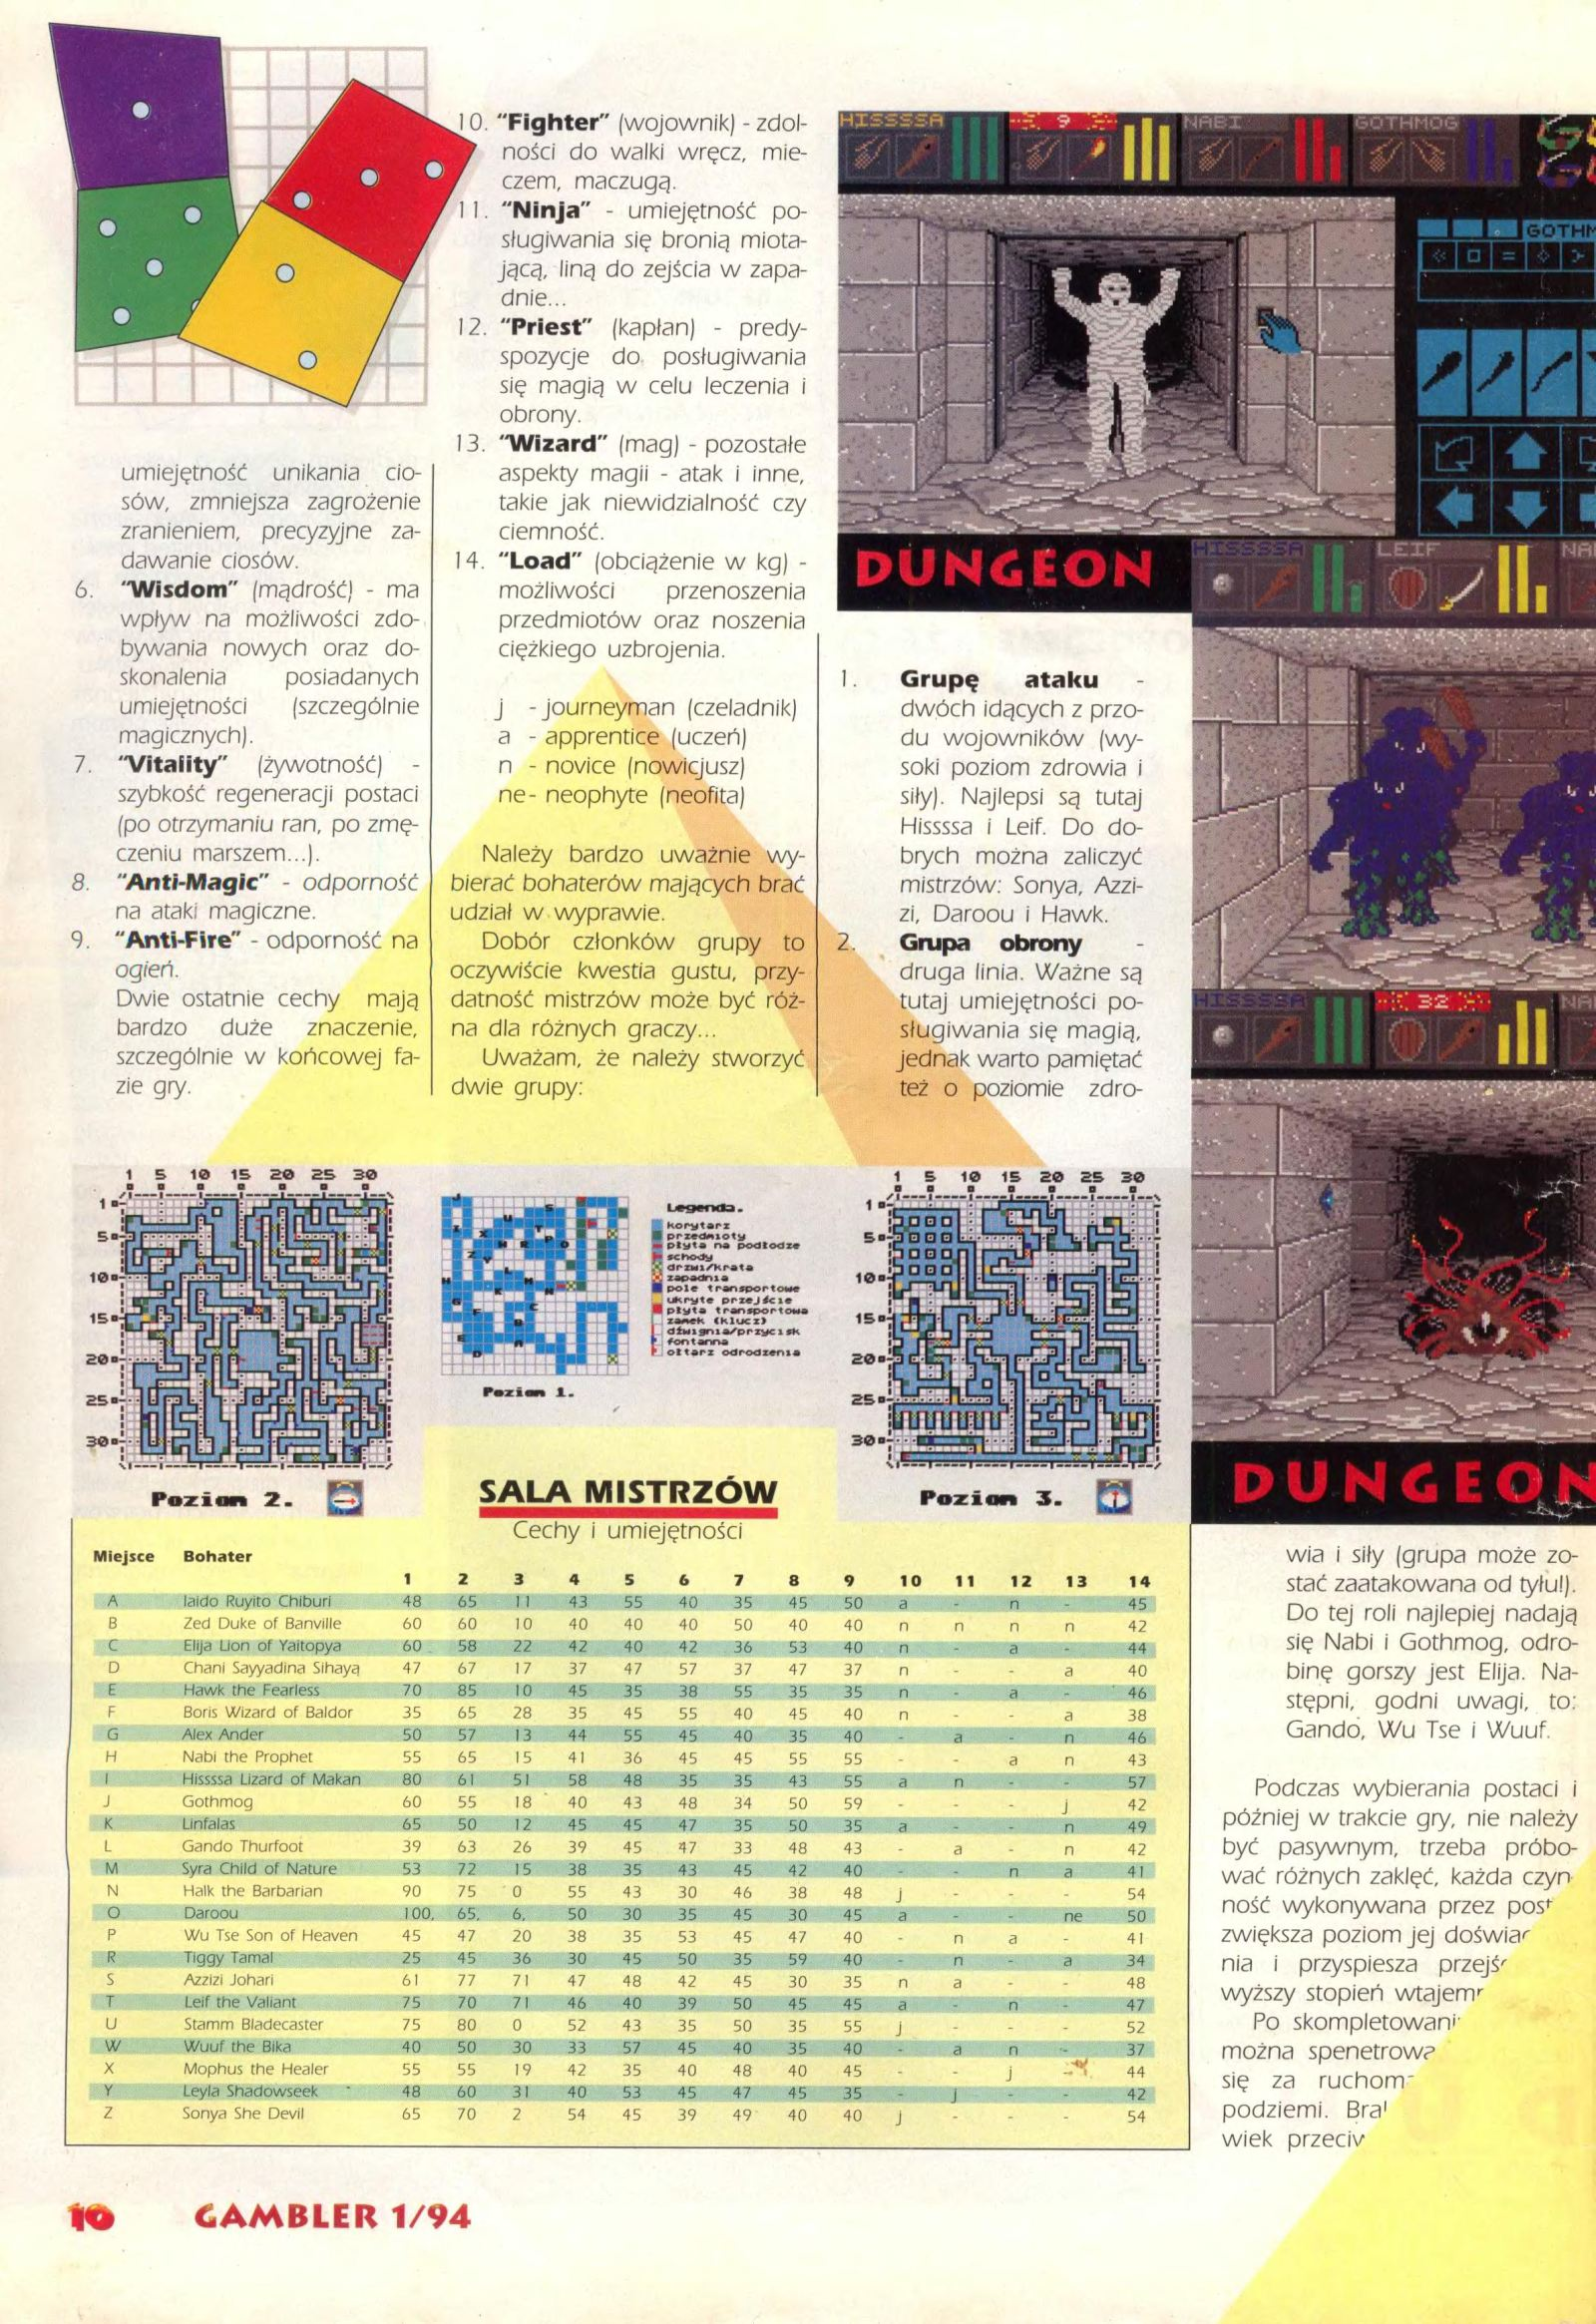 Dungeon Master Guide published in Polish magazine 'Gambler', January 1994, Page 10